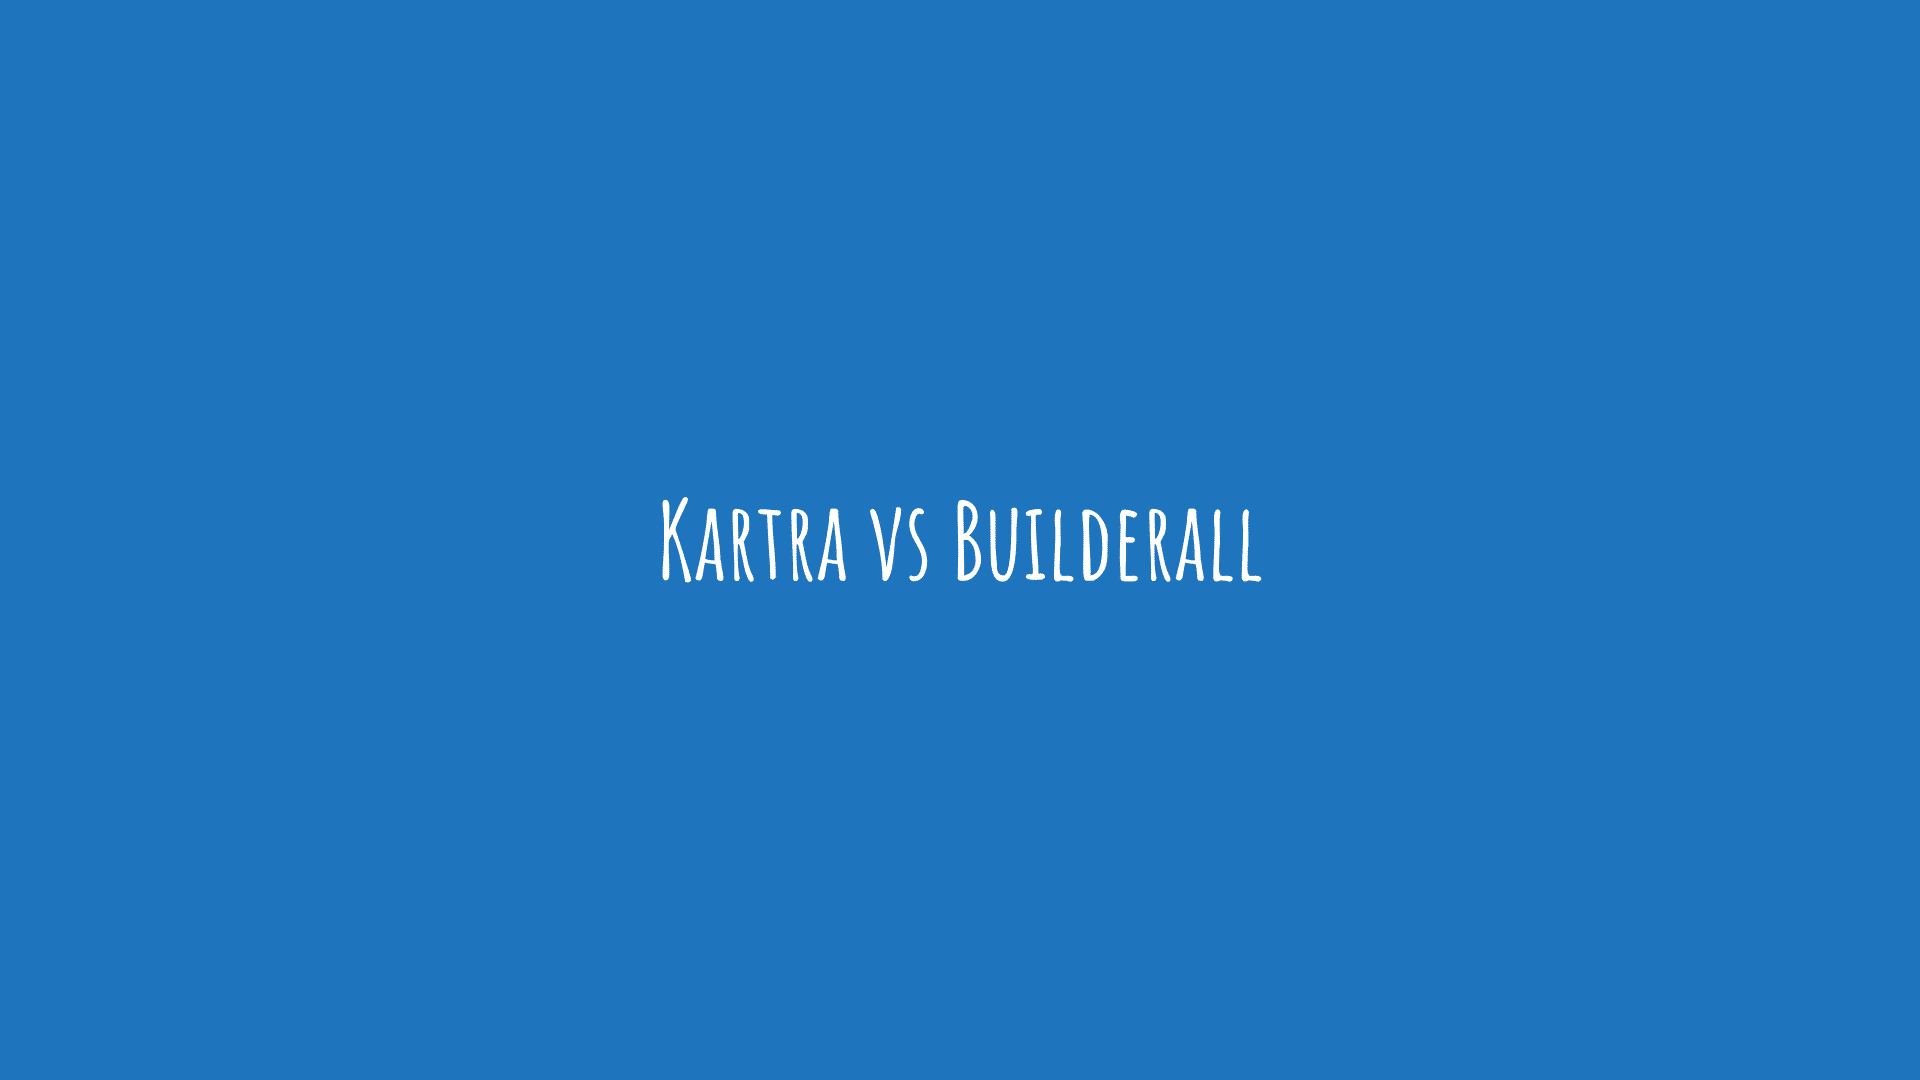 Kartra vs Builderall